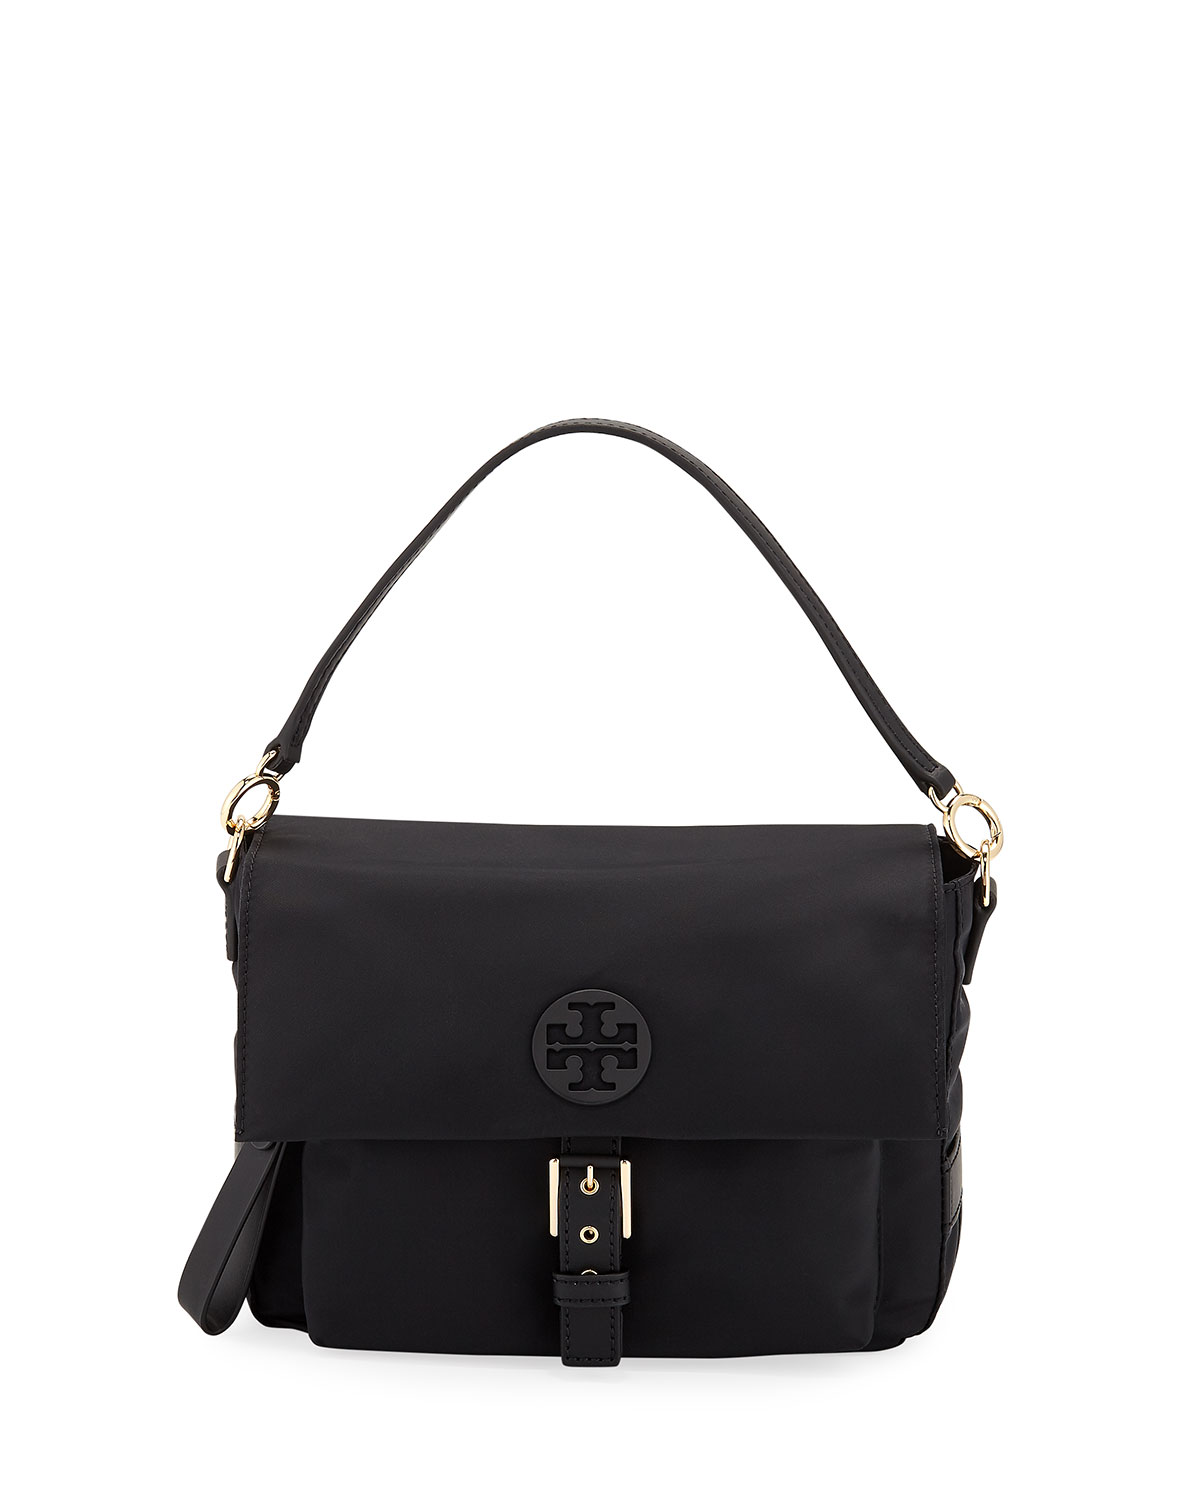 Tilda Nylon Crossbody Bag